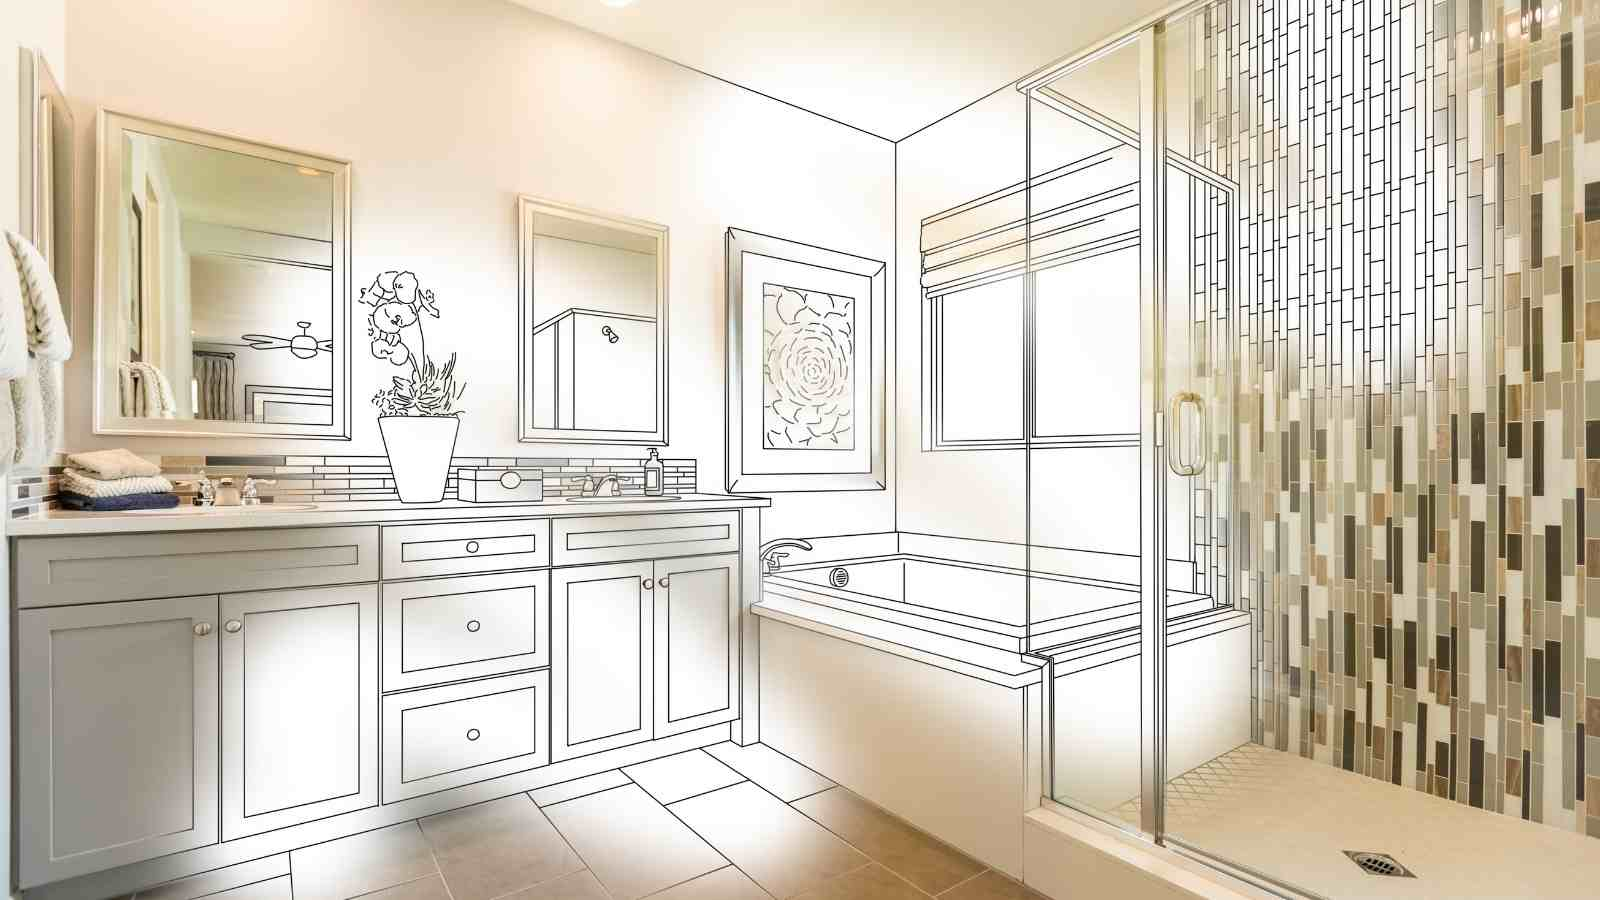 ideas for bathroom remodel 35 amazing bathroom remodel diy ideas that give a stunning makeover to your bathroom 9285